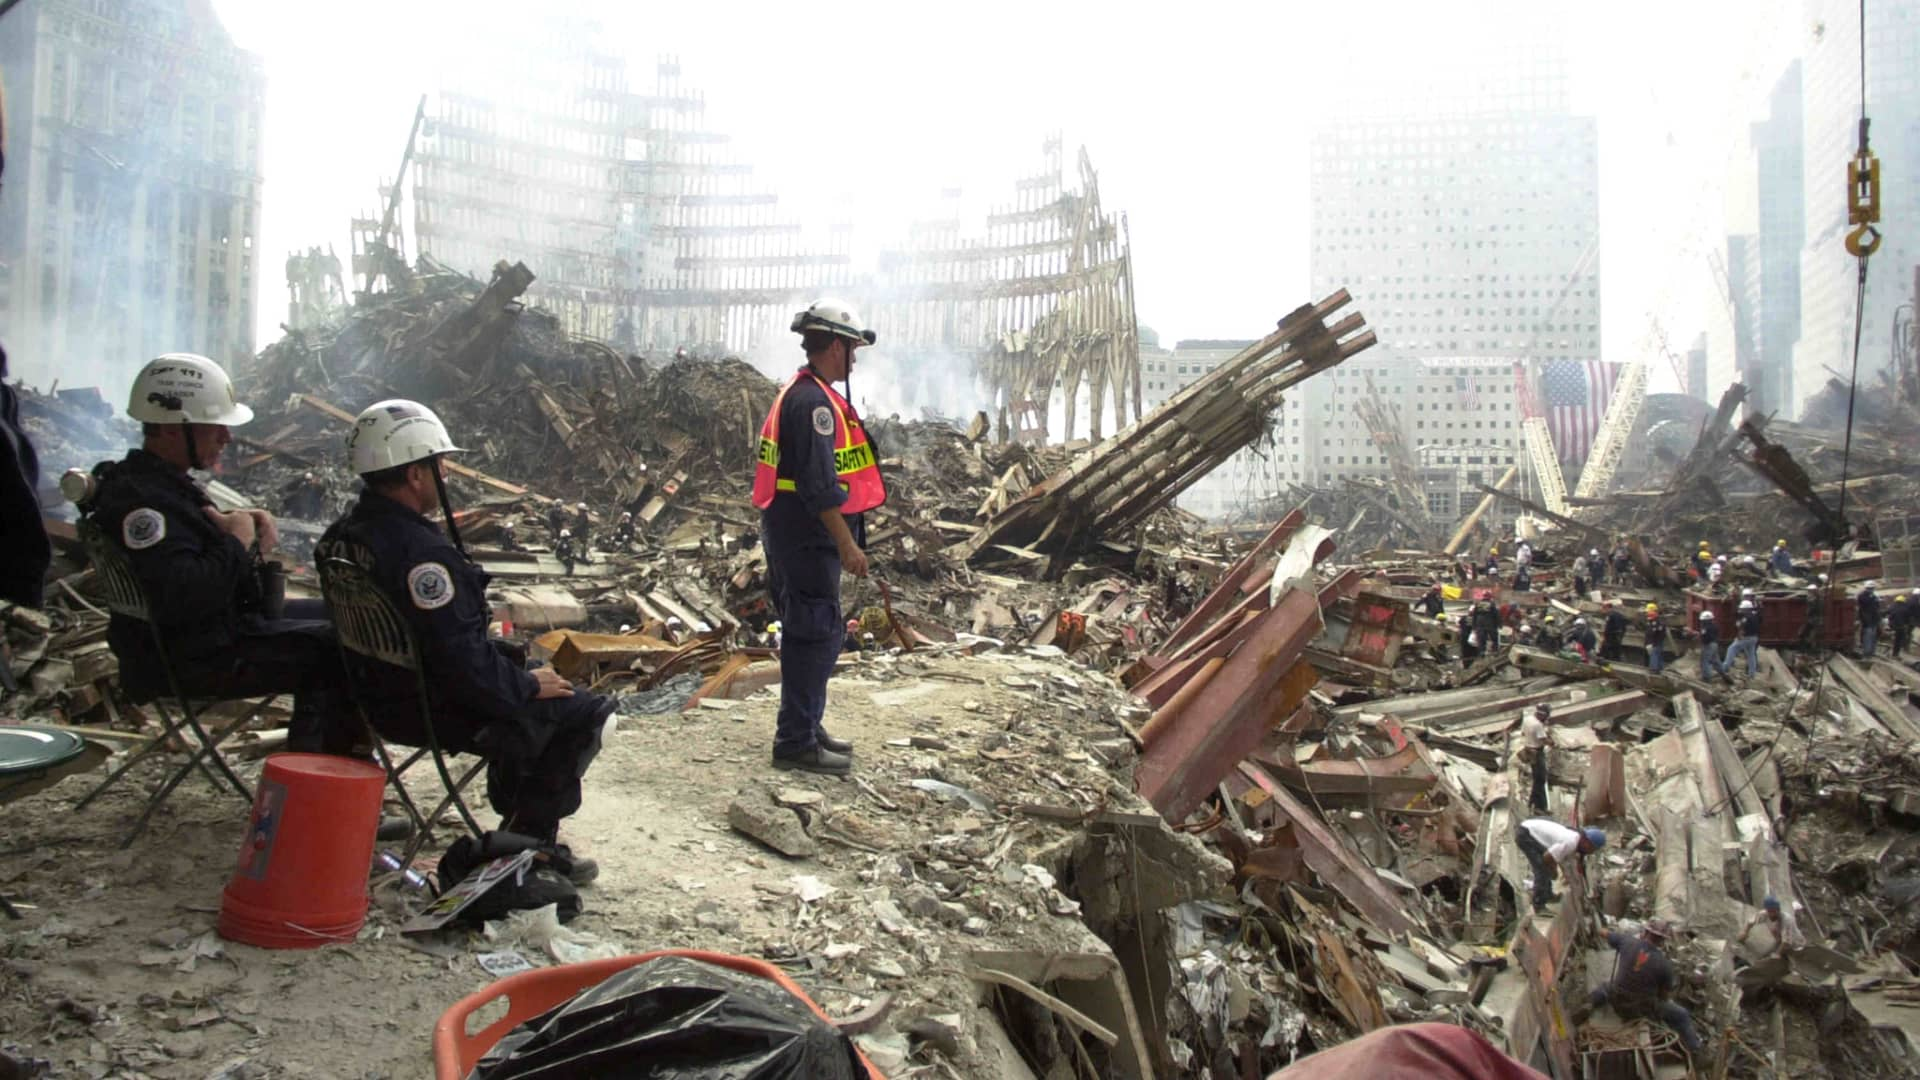 Rescue workers sift through debris at the ground Zero of what remains of the World Trade Center twin towers site, September 24, 2001.